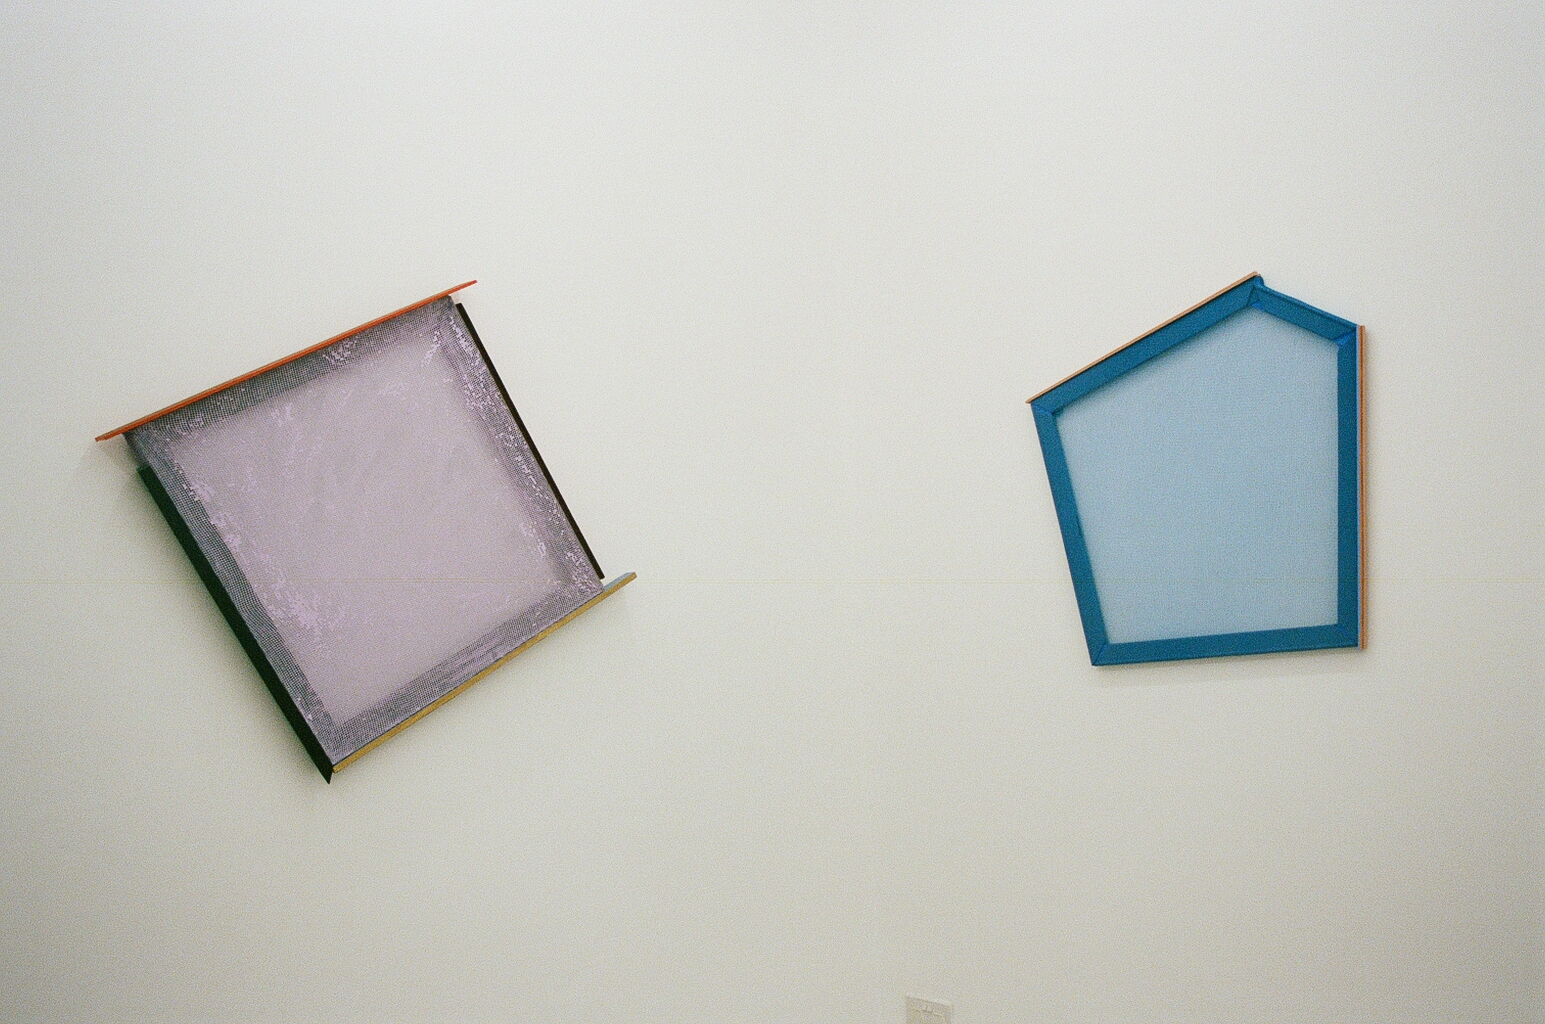 Composition 33  (L) and  Composition 31  (R), HelenA Pritchard 2018, Installation View at 1961 Projects